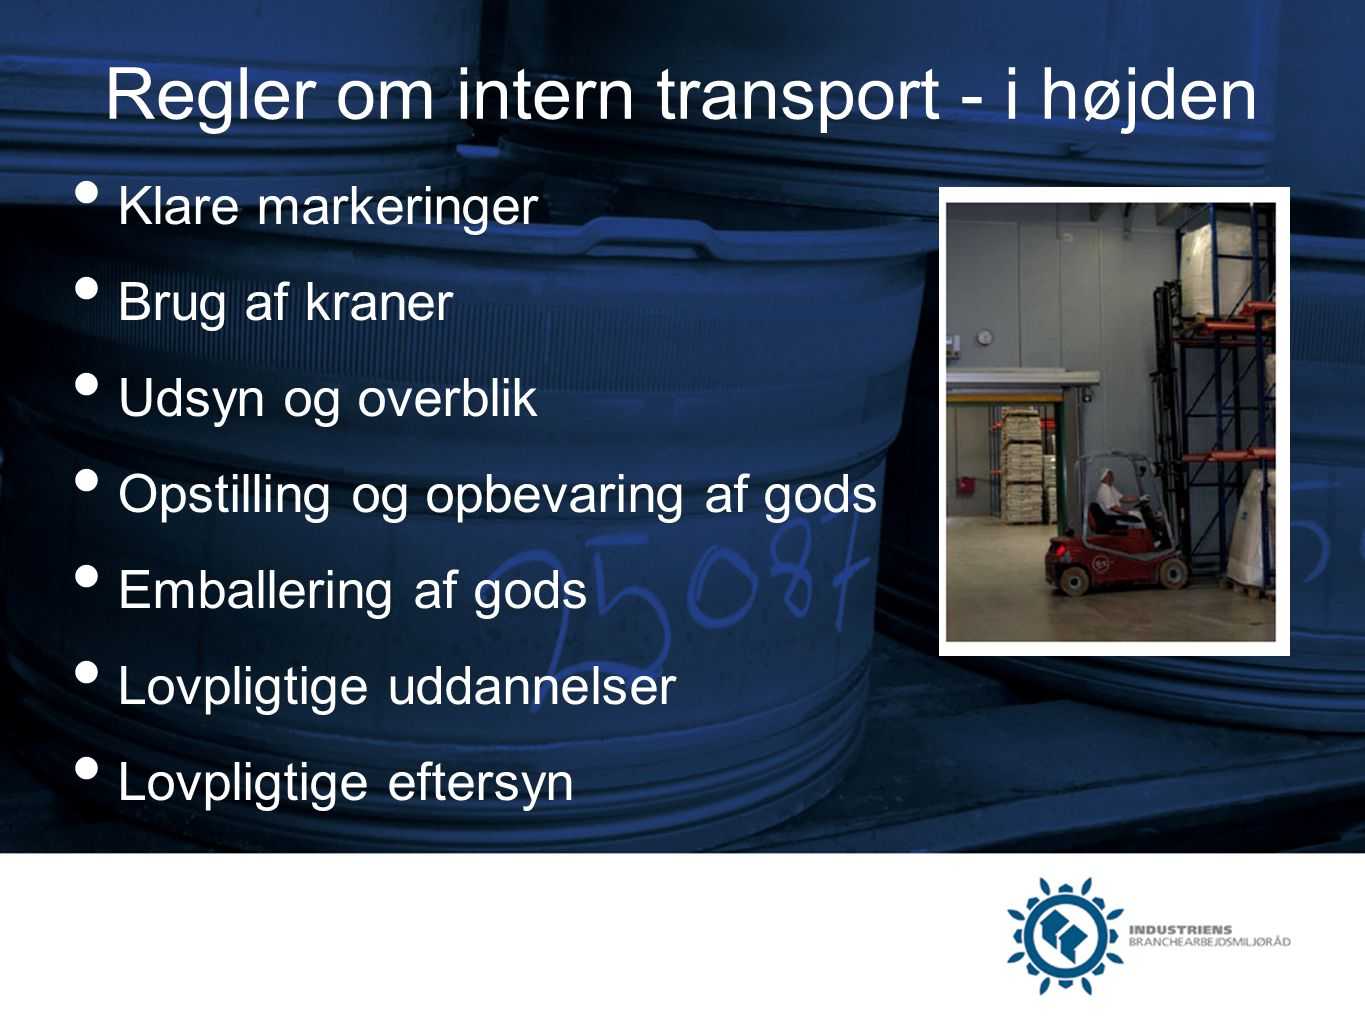 Regler om intern transport - i højden